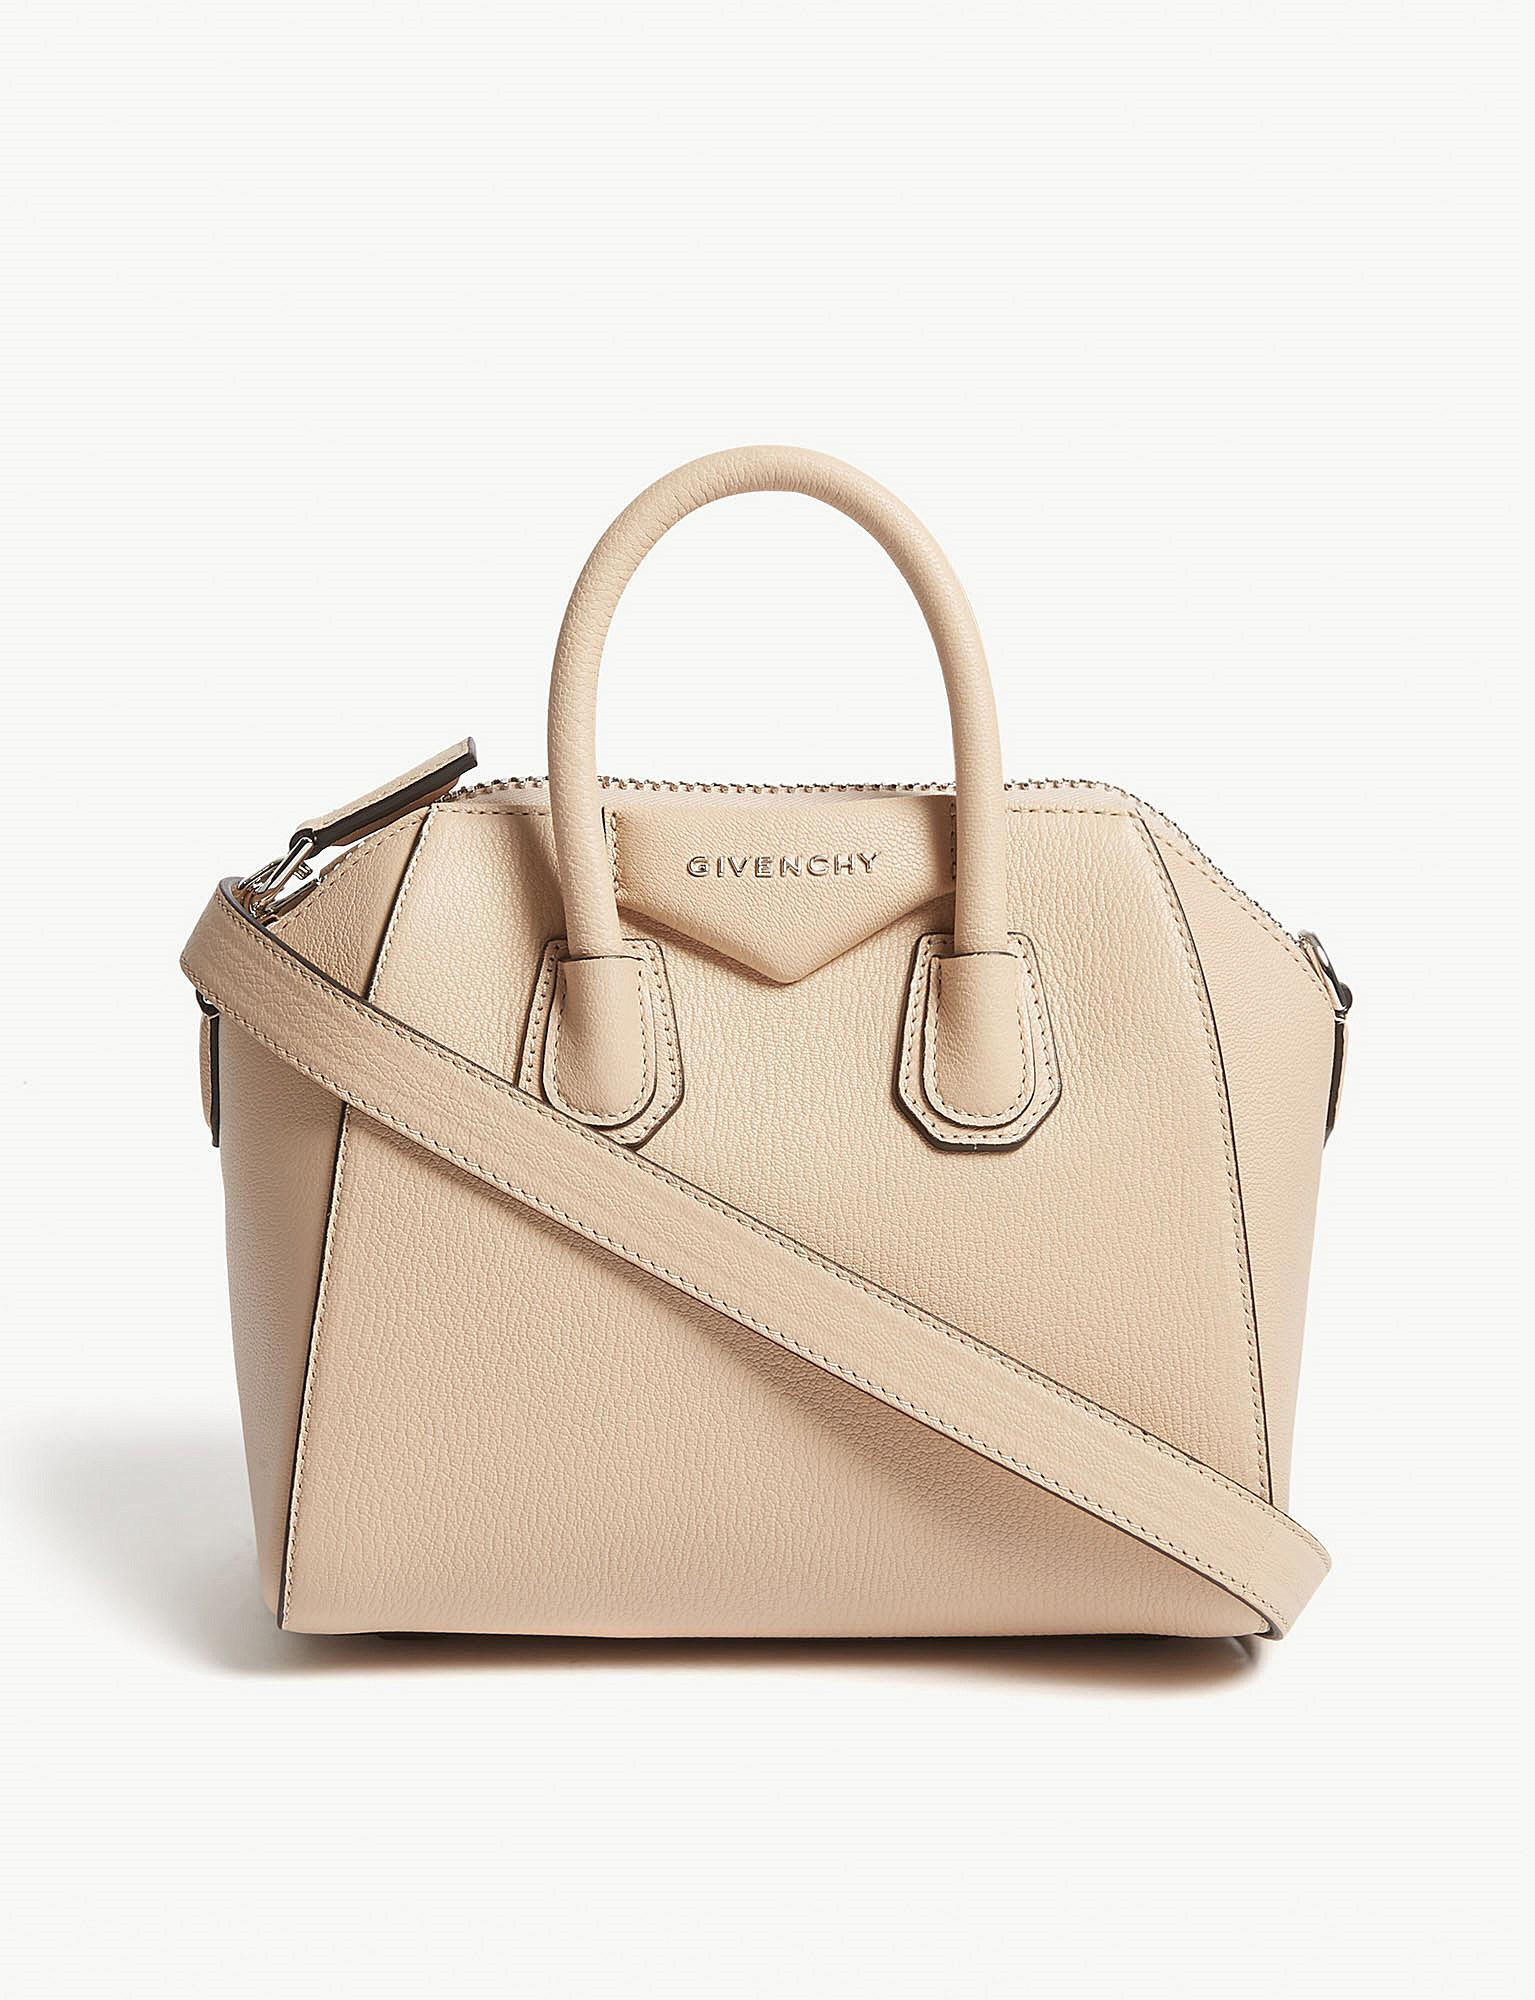 6b6e0ce27a41 Lyst - Givenchy Antigona Mini Grained Leather Tote Bag in Natural